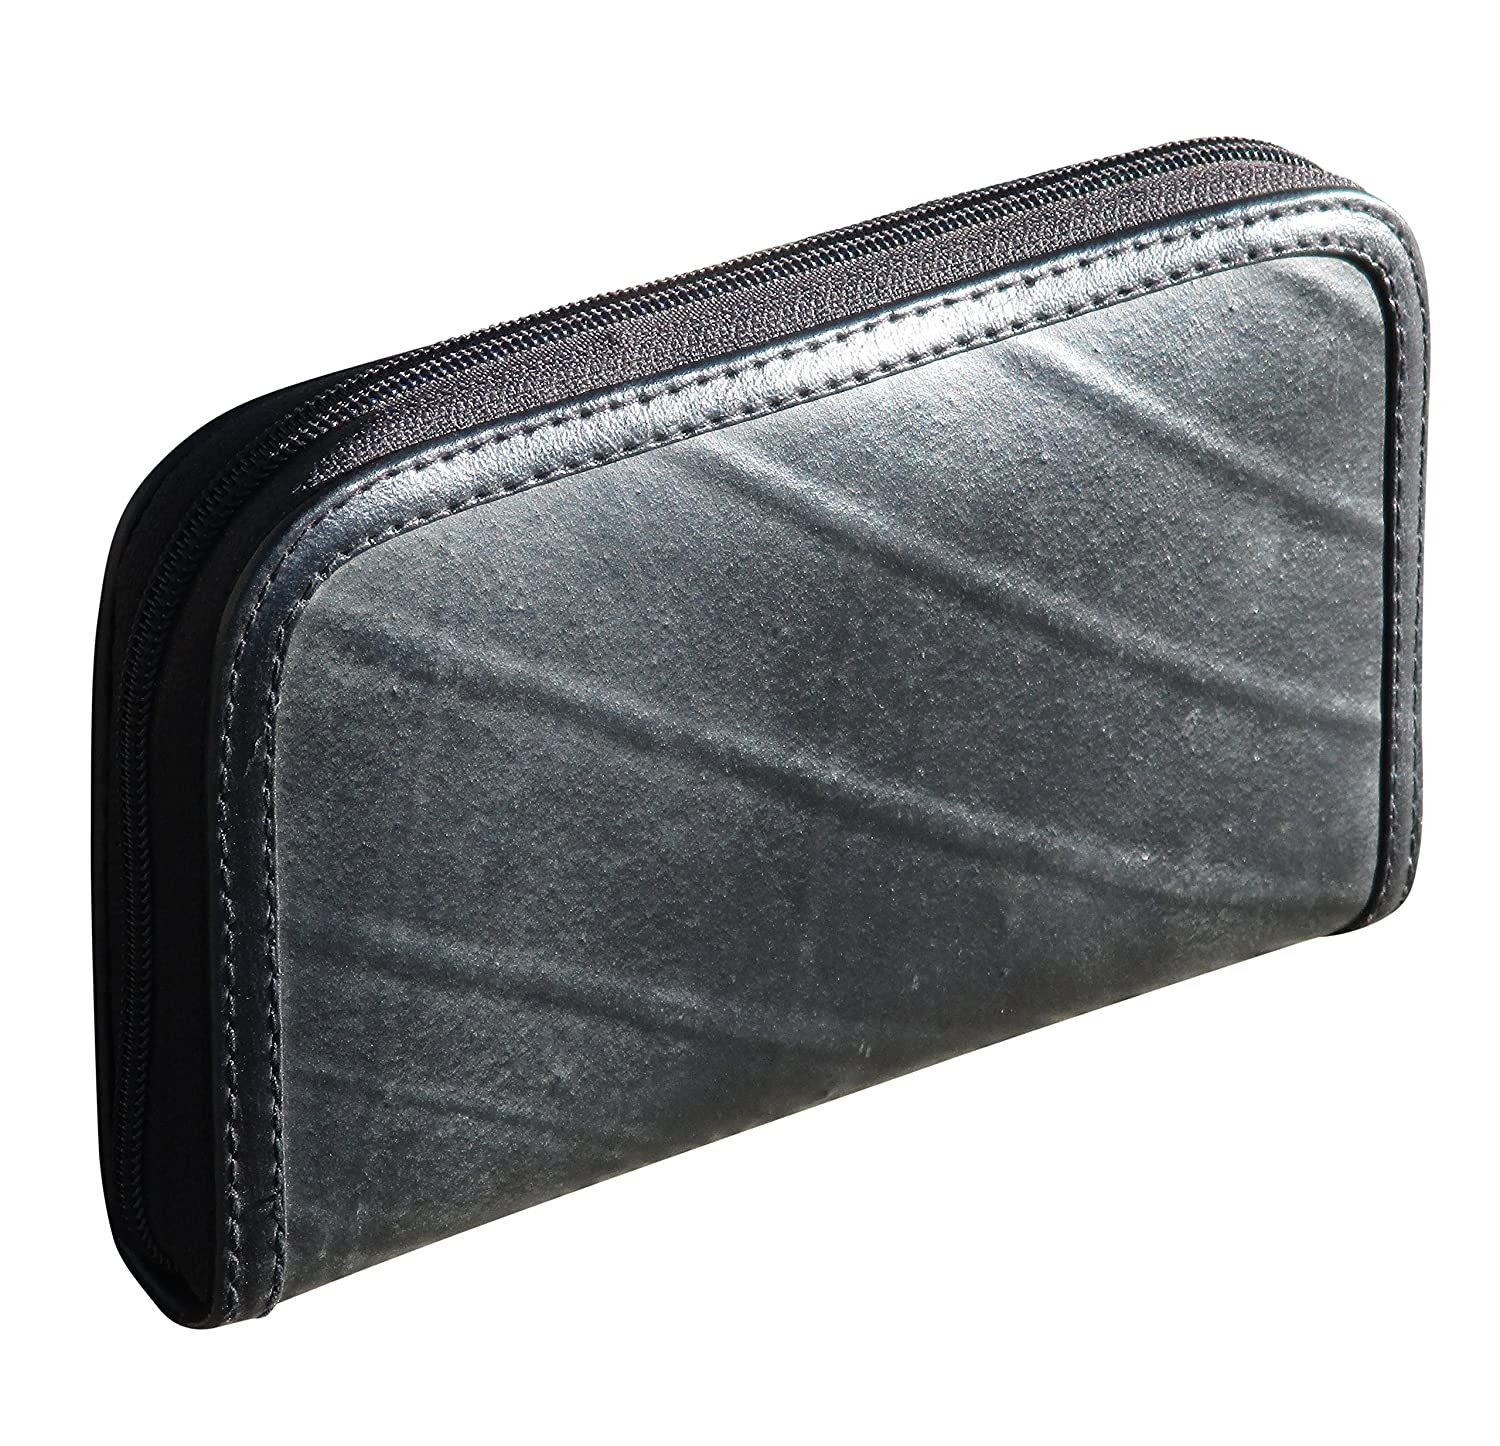 Medium zip wallet using inner tube - FREE SHIPPING, upcycled style eco friendly vegan repurposed salvaged reclaimed recycled bag purse clutch wallets gift for cyclist innertube tutes bike tire rubber